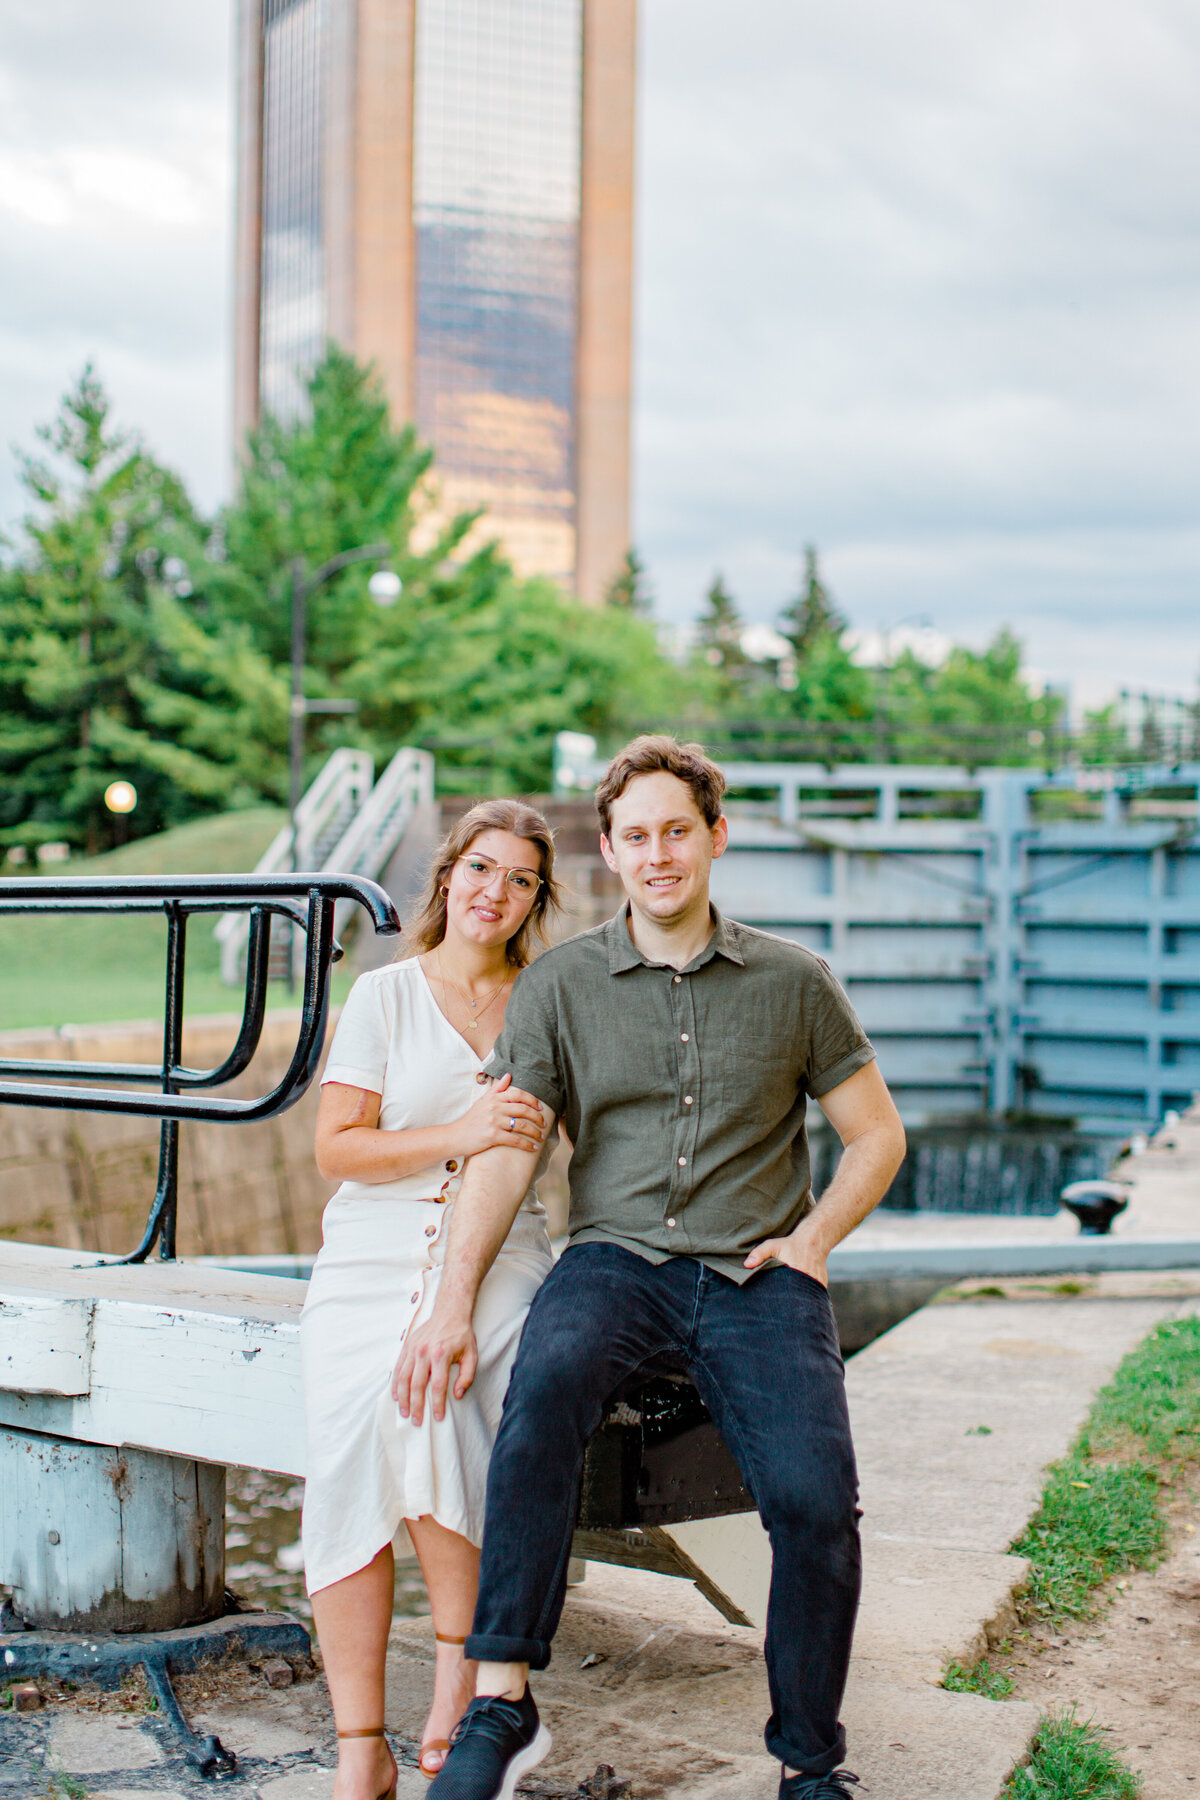 nicole-d-engagement-session-grey-loft-studio-2020-103